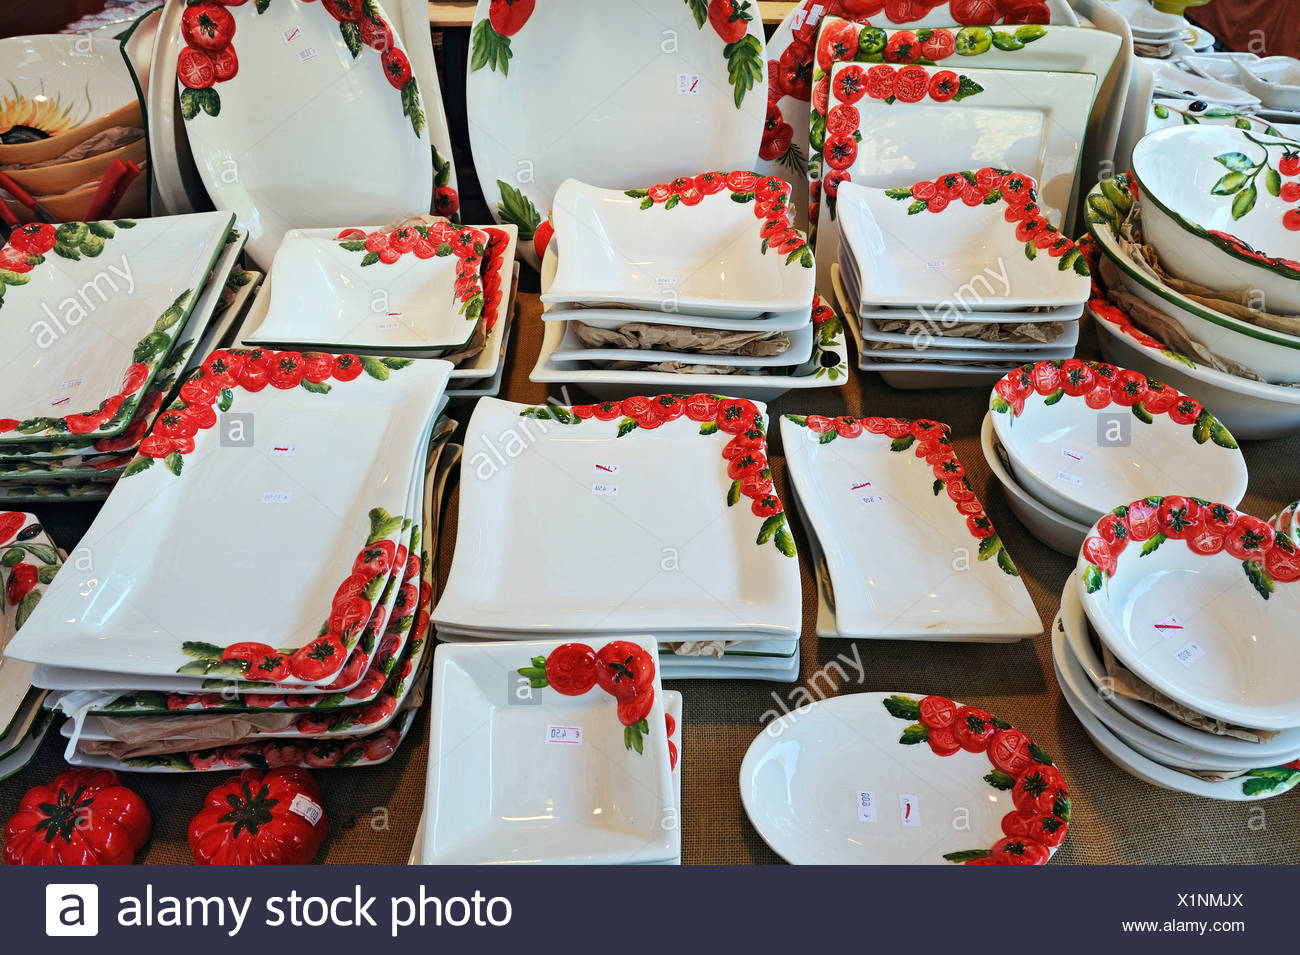 Crockery with tomato designs, Auer Dult market, Munich, Bavaria, Germany, Europe - Stock Image